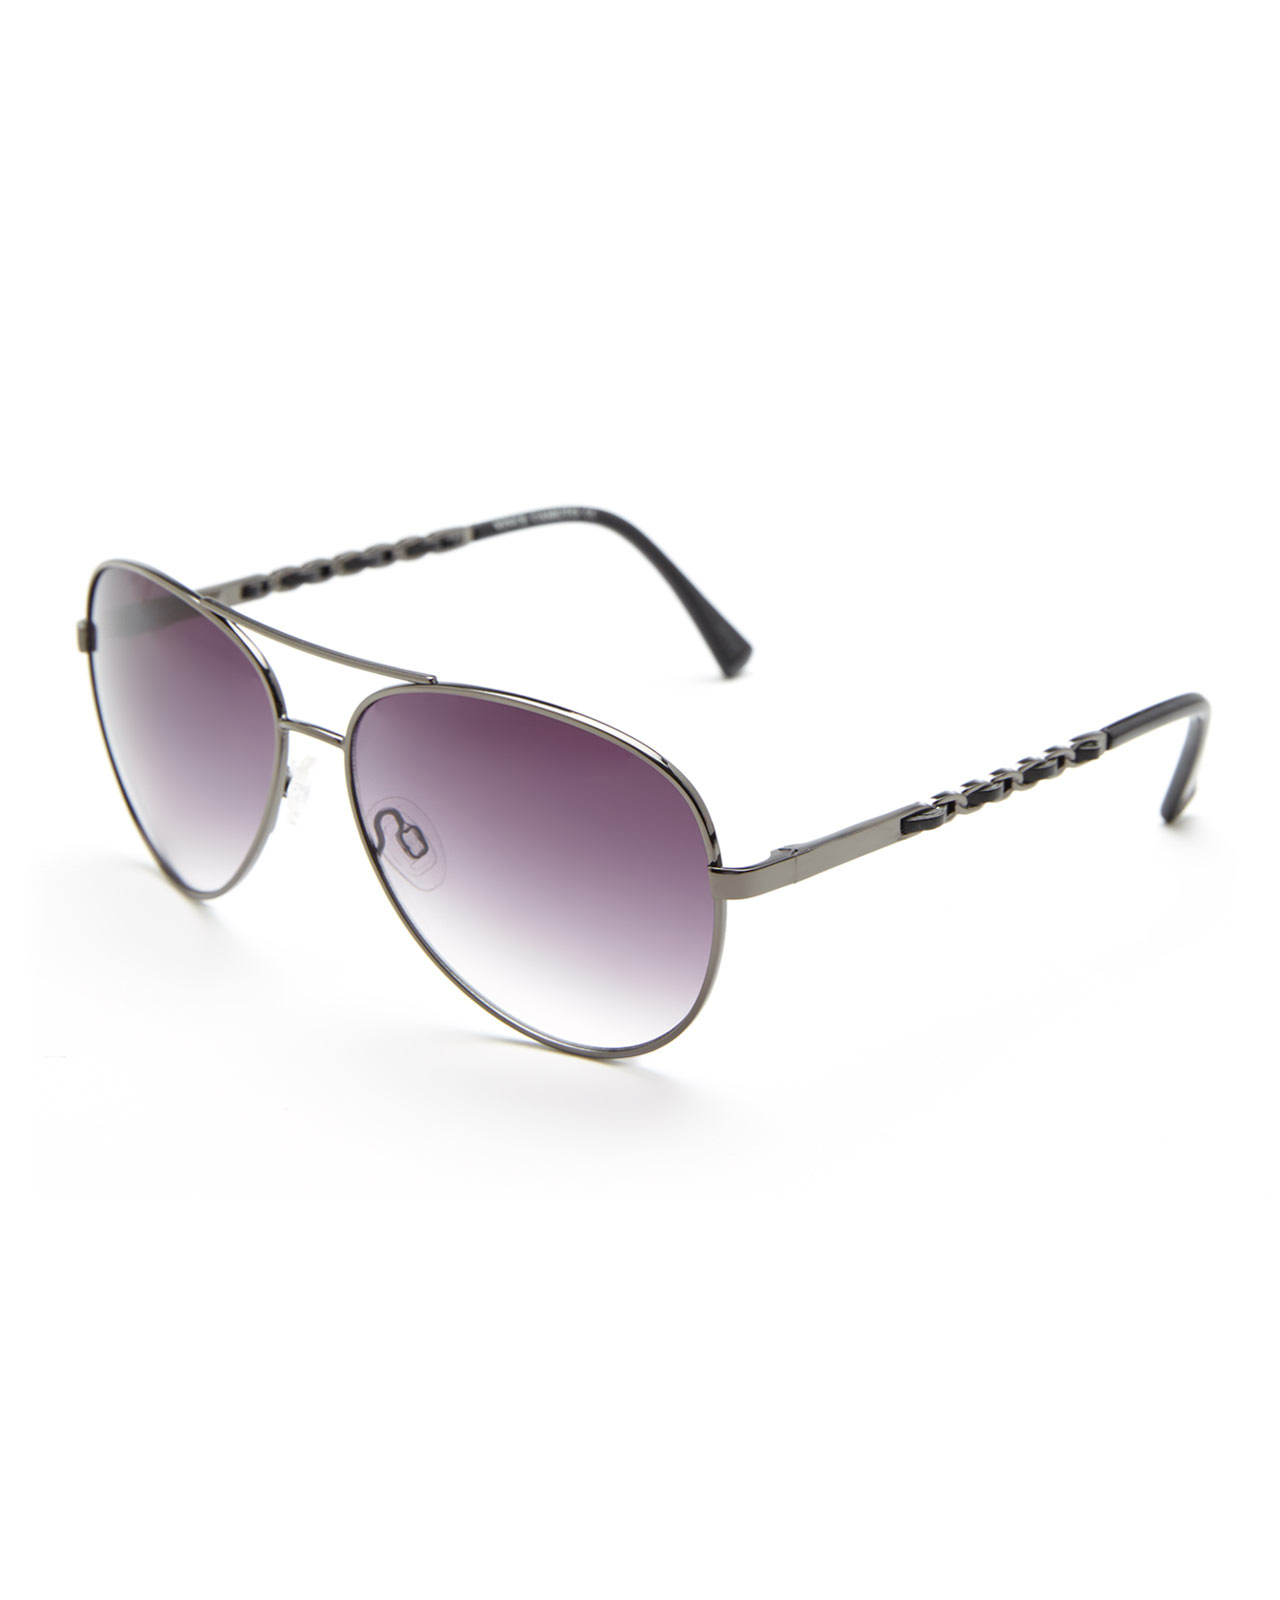 4cf0c43cb8 Lyst - Vince Camuto Vc570 Gunmetal Aviator Sunglasses in Purple for Men